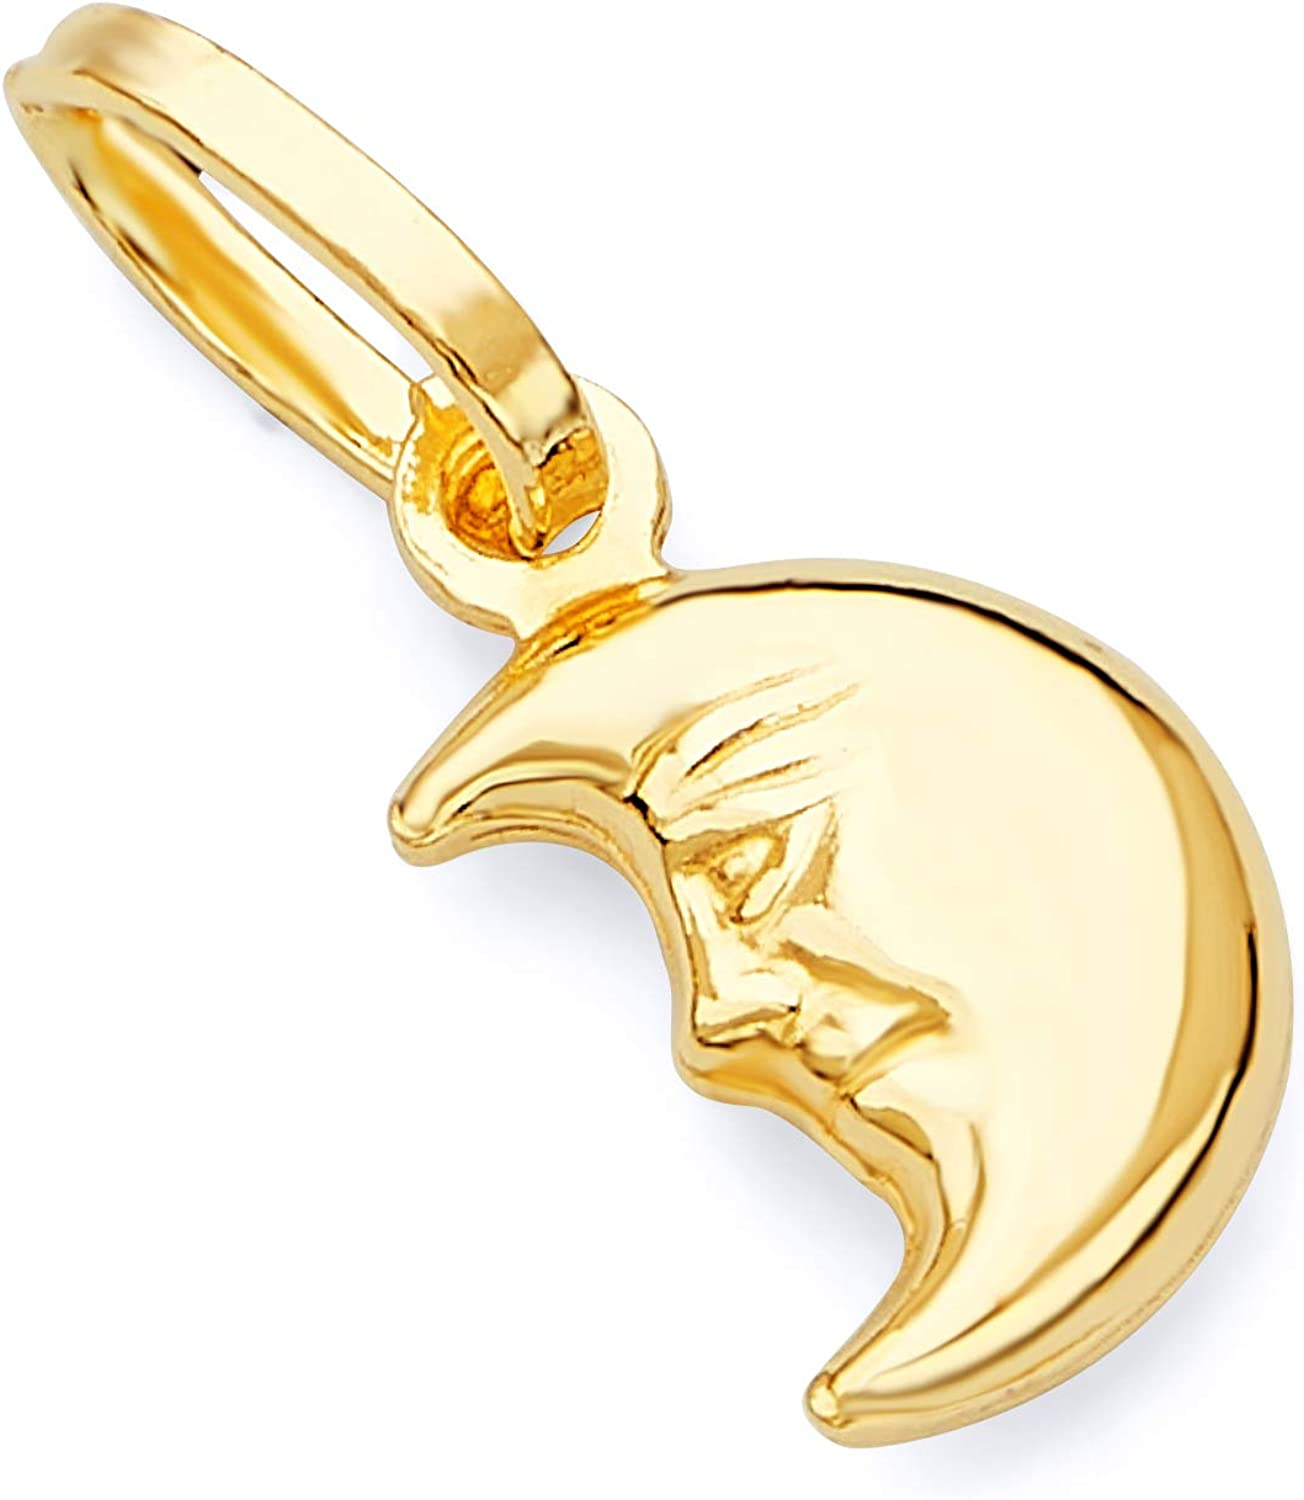 GoldenMine Max 86% OFF Bargain sale Fine Jewelry Collection 14k Moon Half Yellow Fac Gold